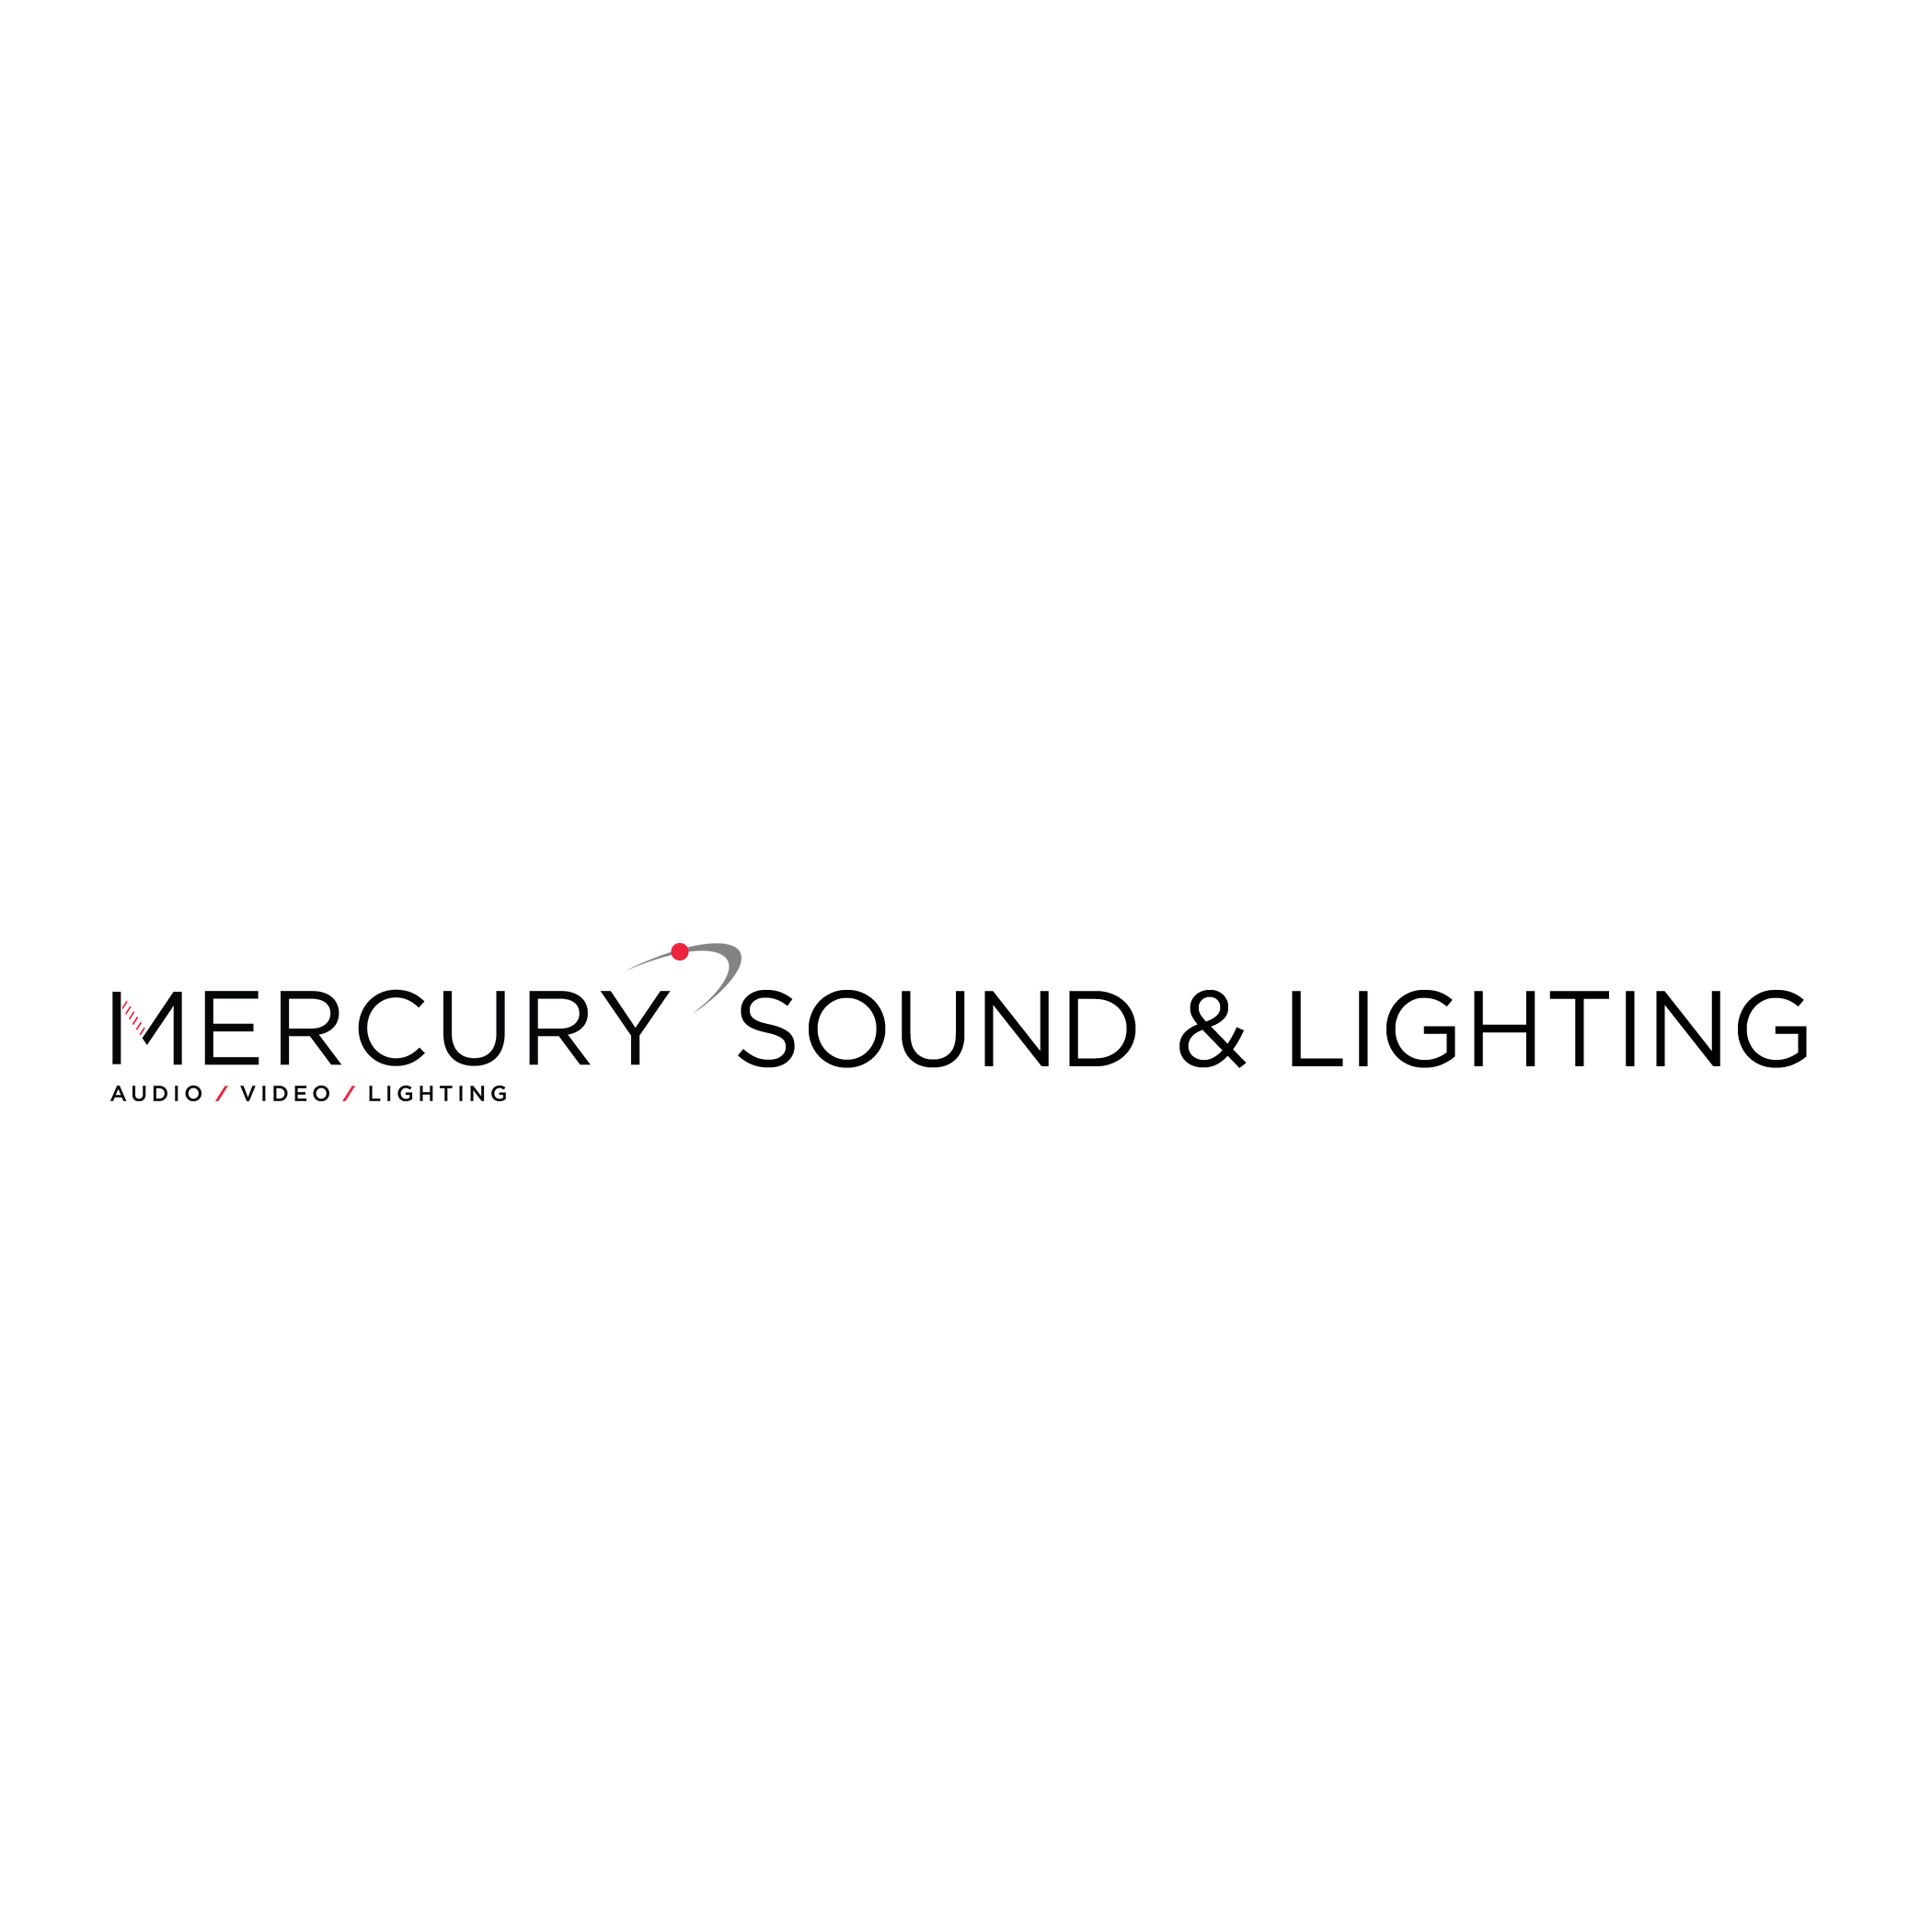 Mercury Sound & Lighting logo